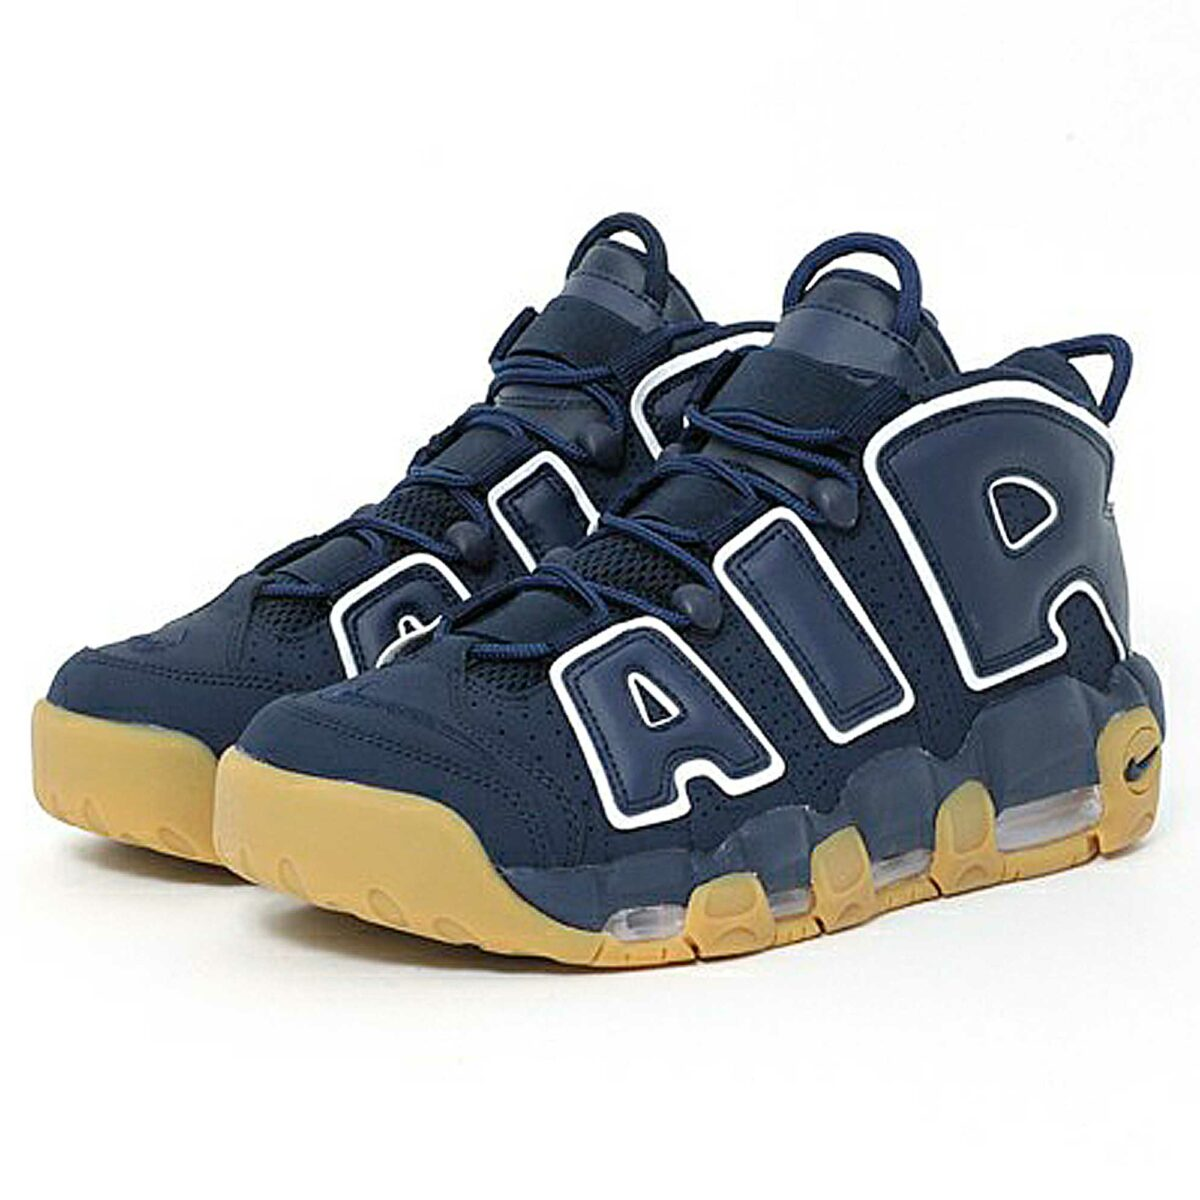 nike air more uptempo 96 obsidian white gum light brown 921948-400 купить